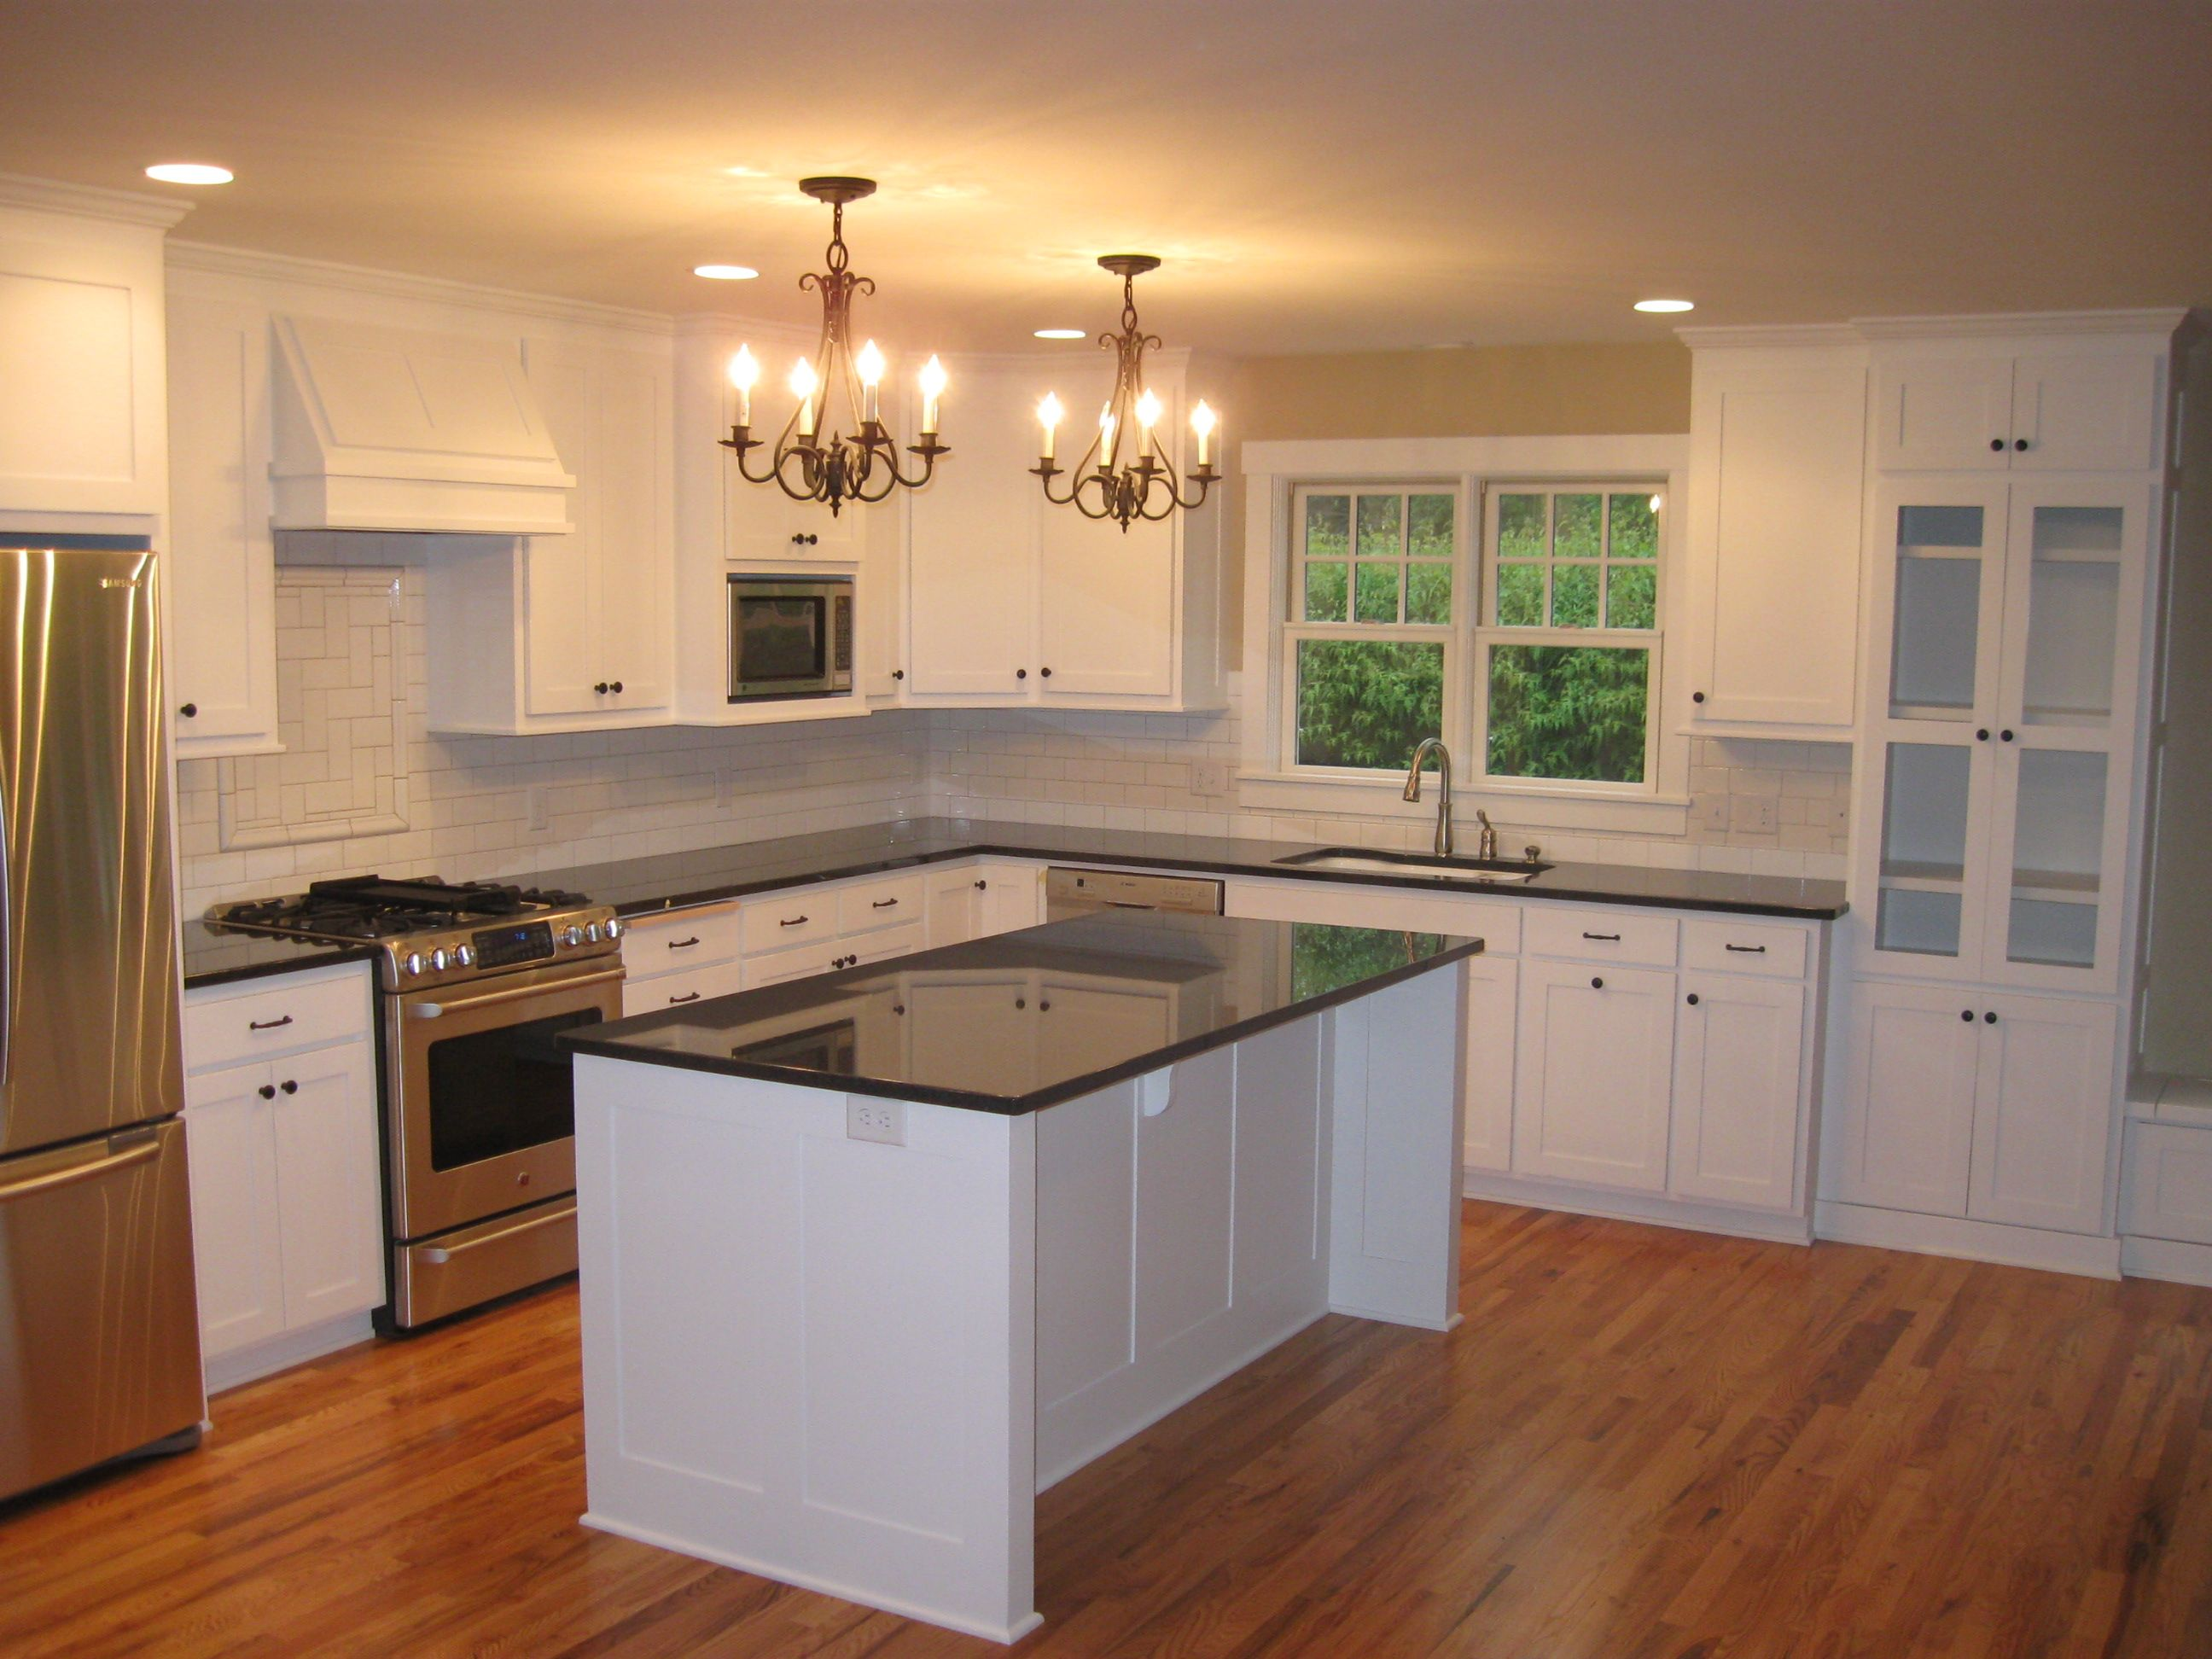 Learn about painting kitchen cabinets